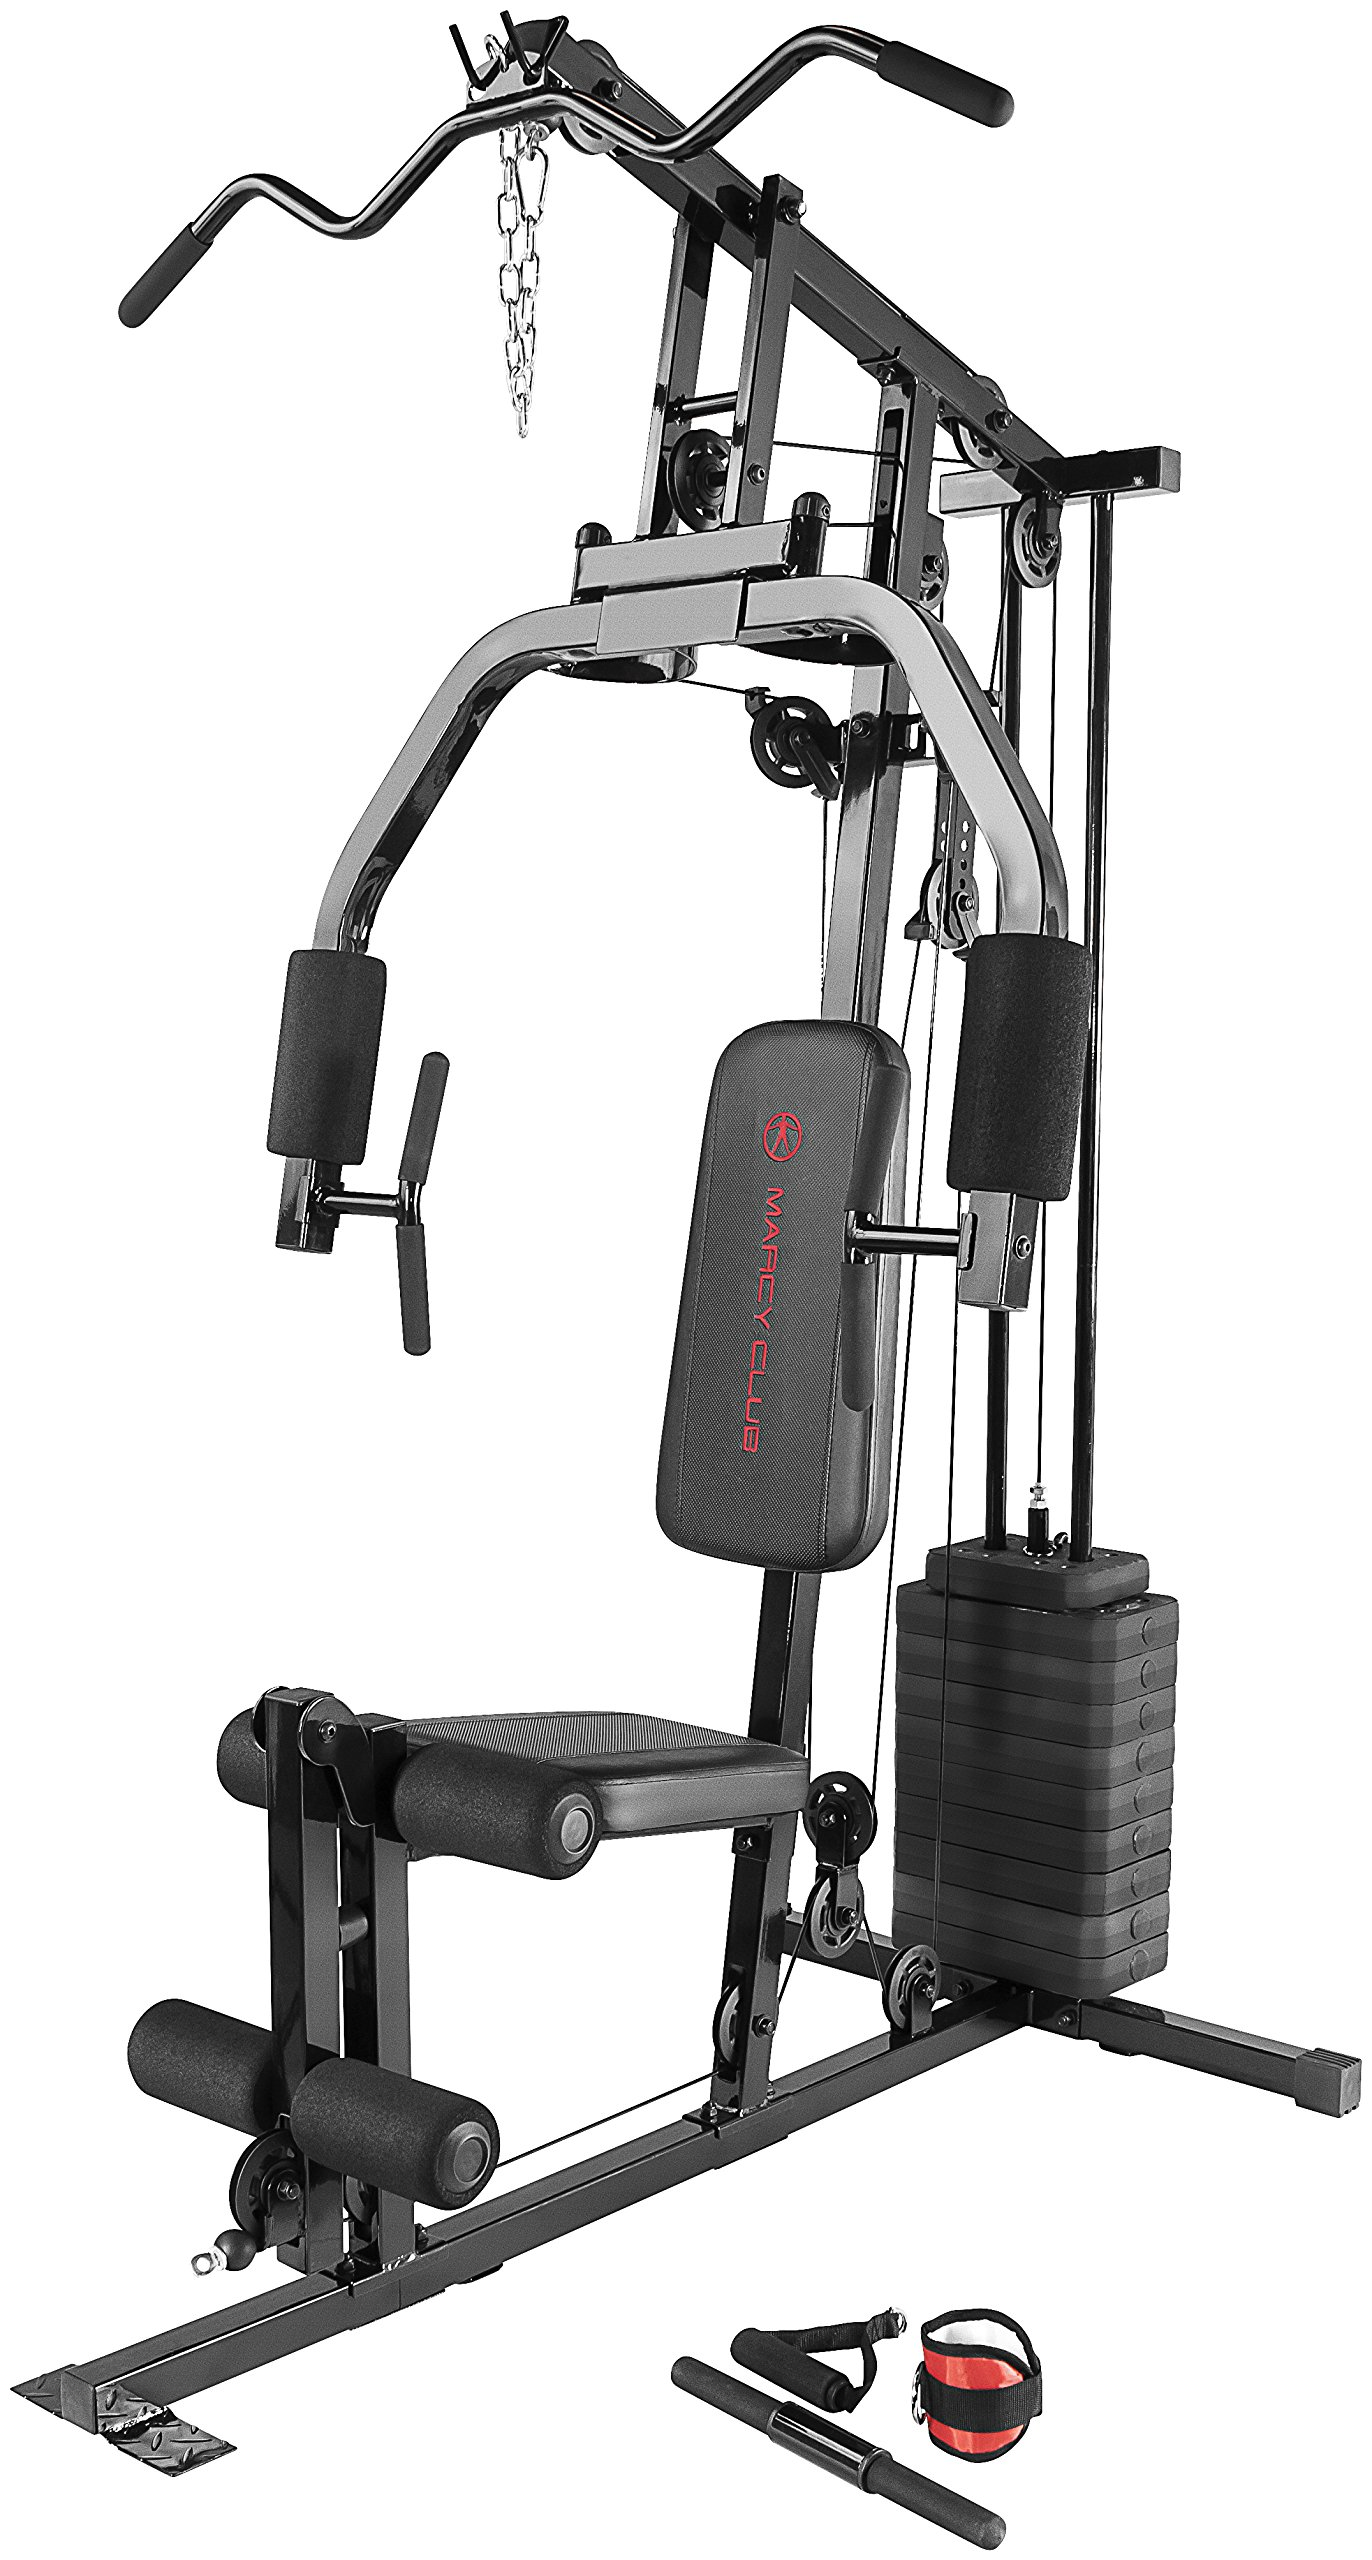 Marcy 100Lb. Stack Home Gym with Pulley, Press Arm, and Leg Developer MKM-81030 by Marcy